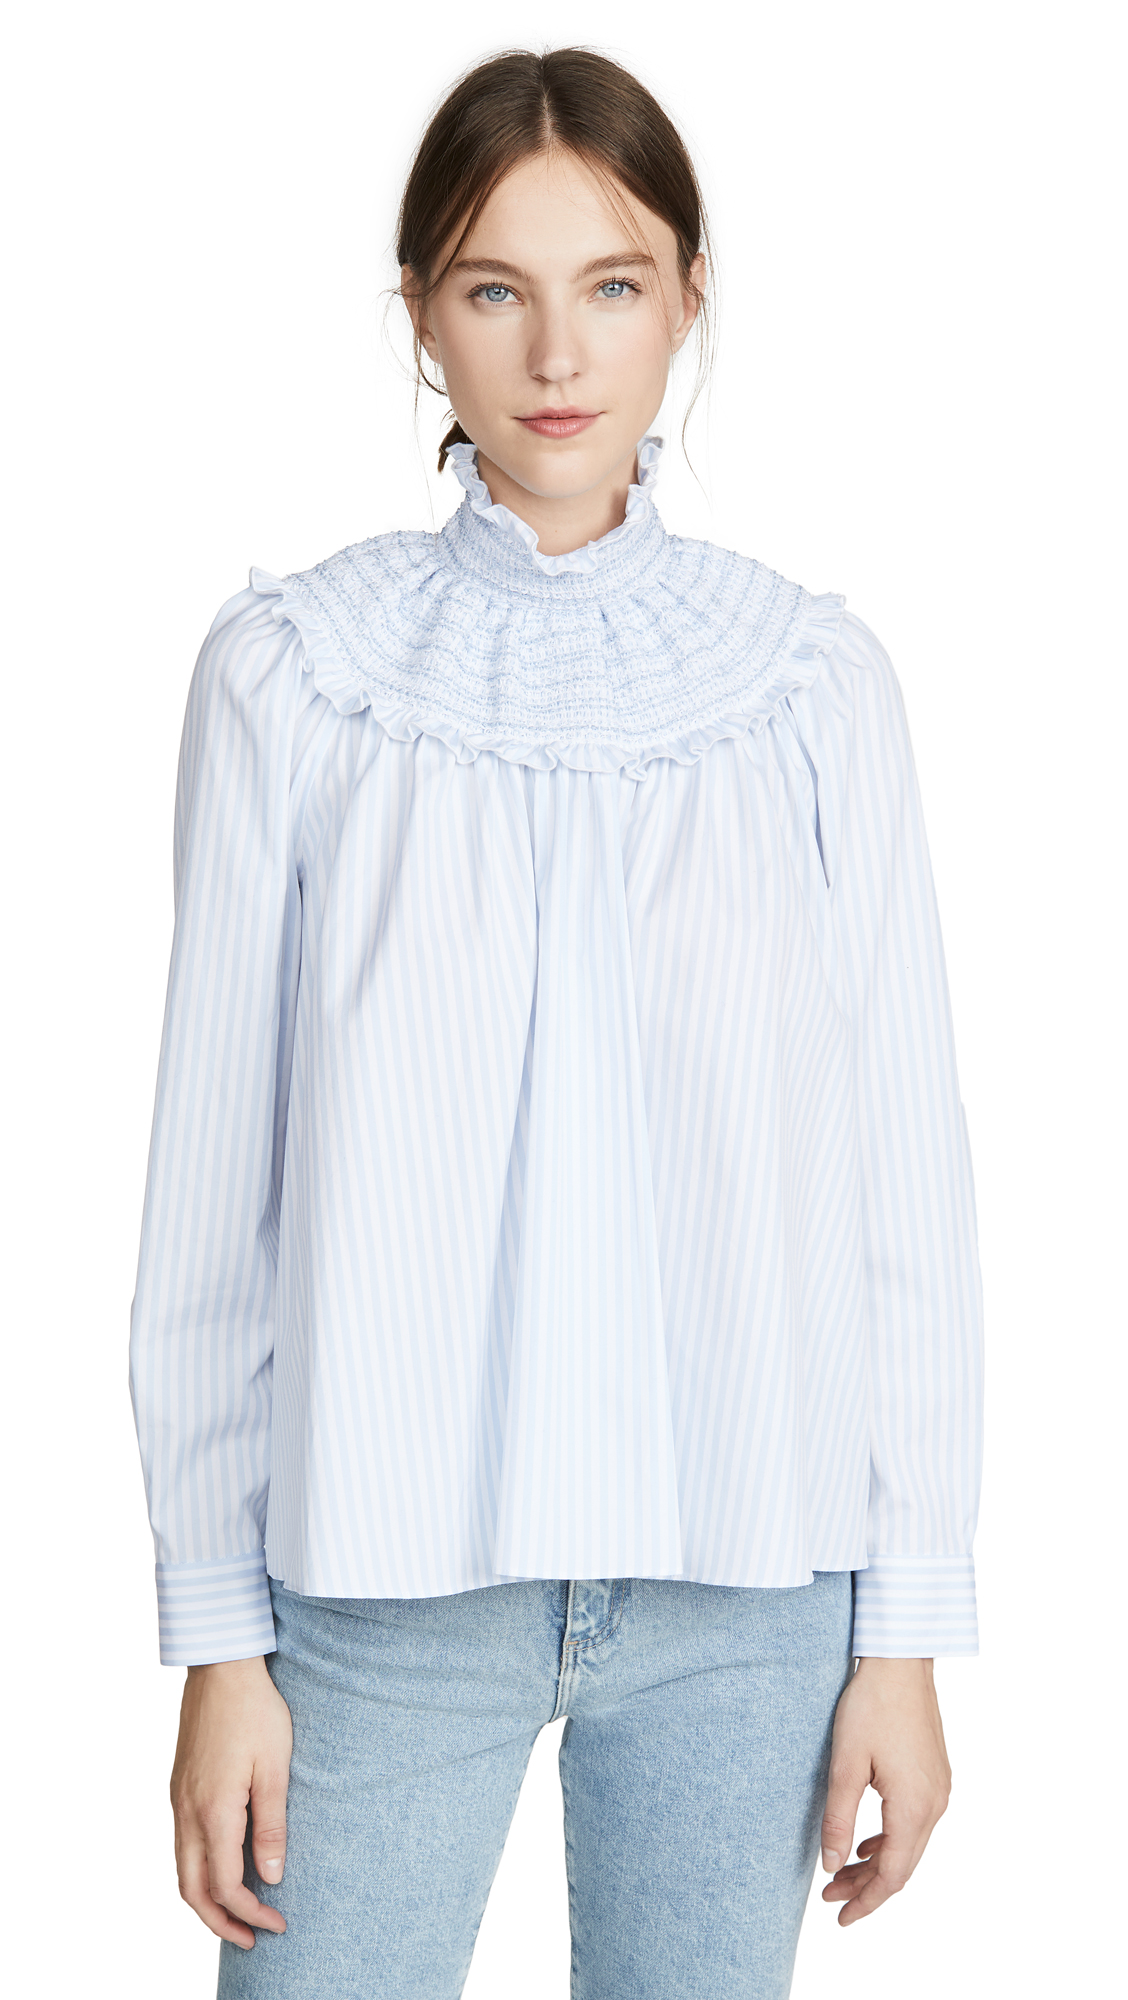 Adam Lippes Smocked Neck Top In Striped Cotton - 40% Off Sale